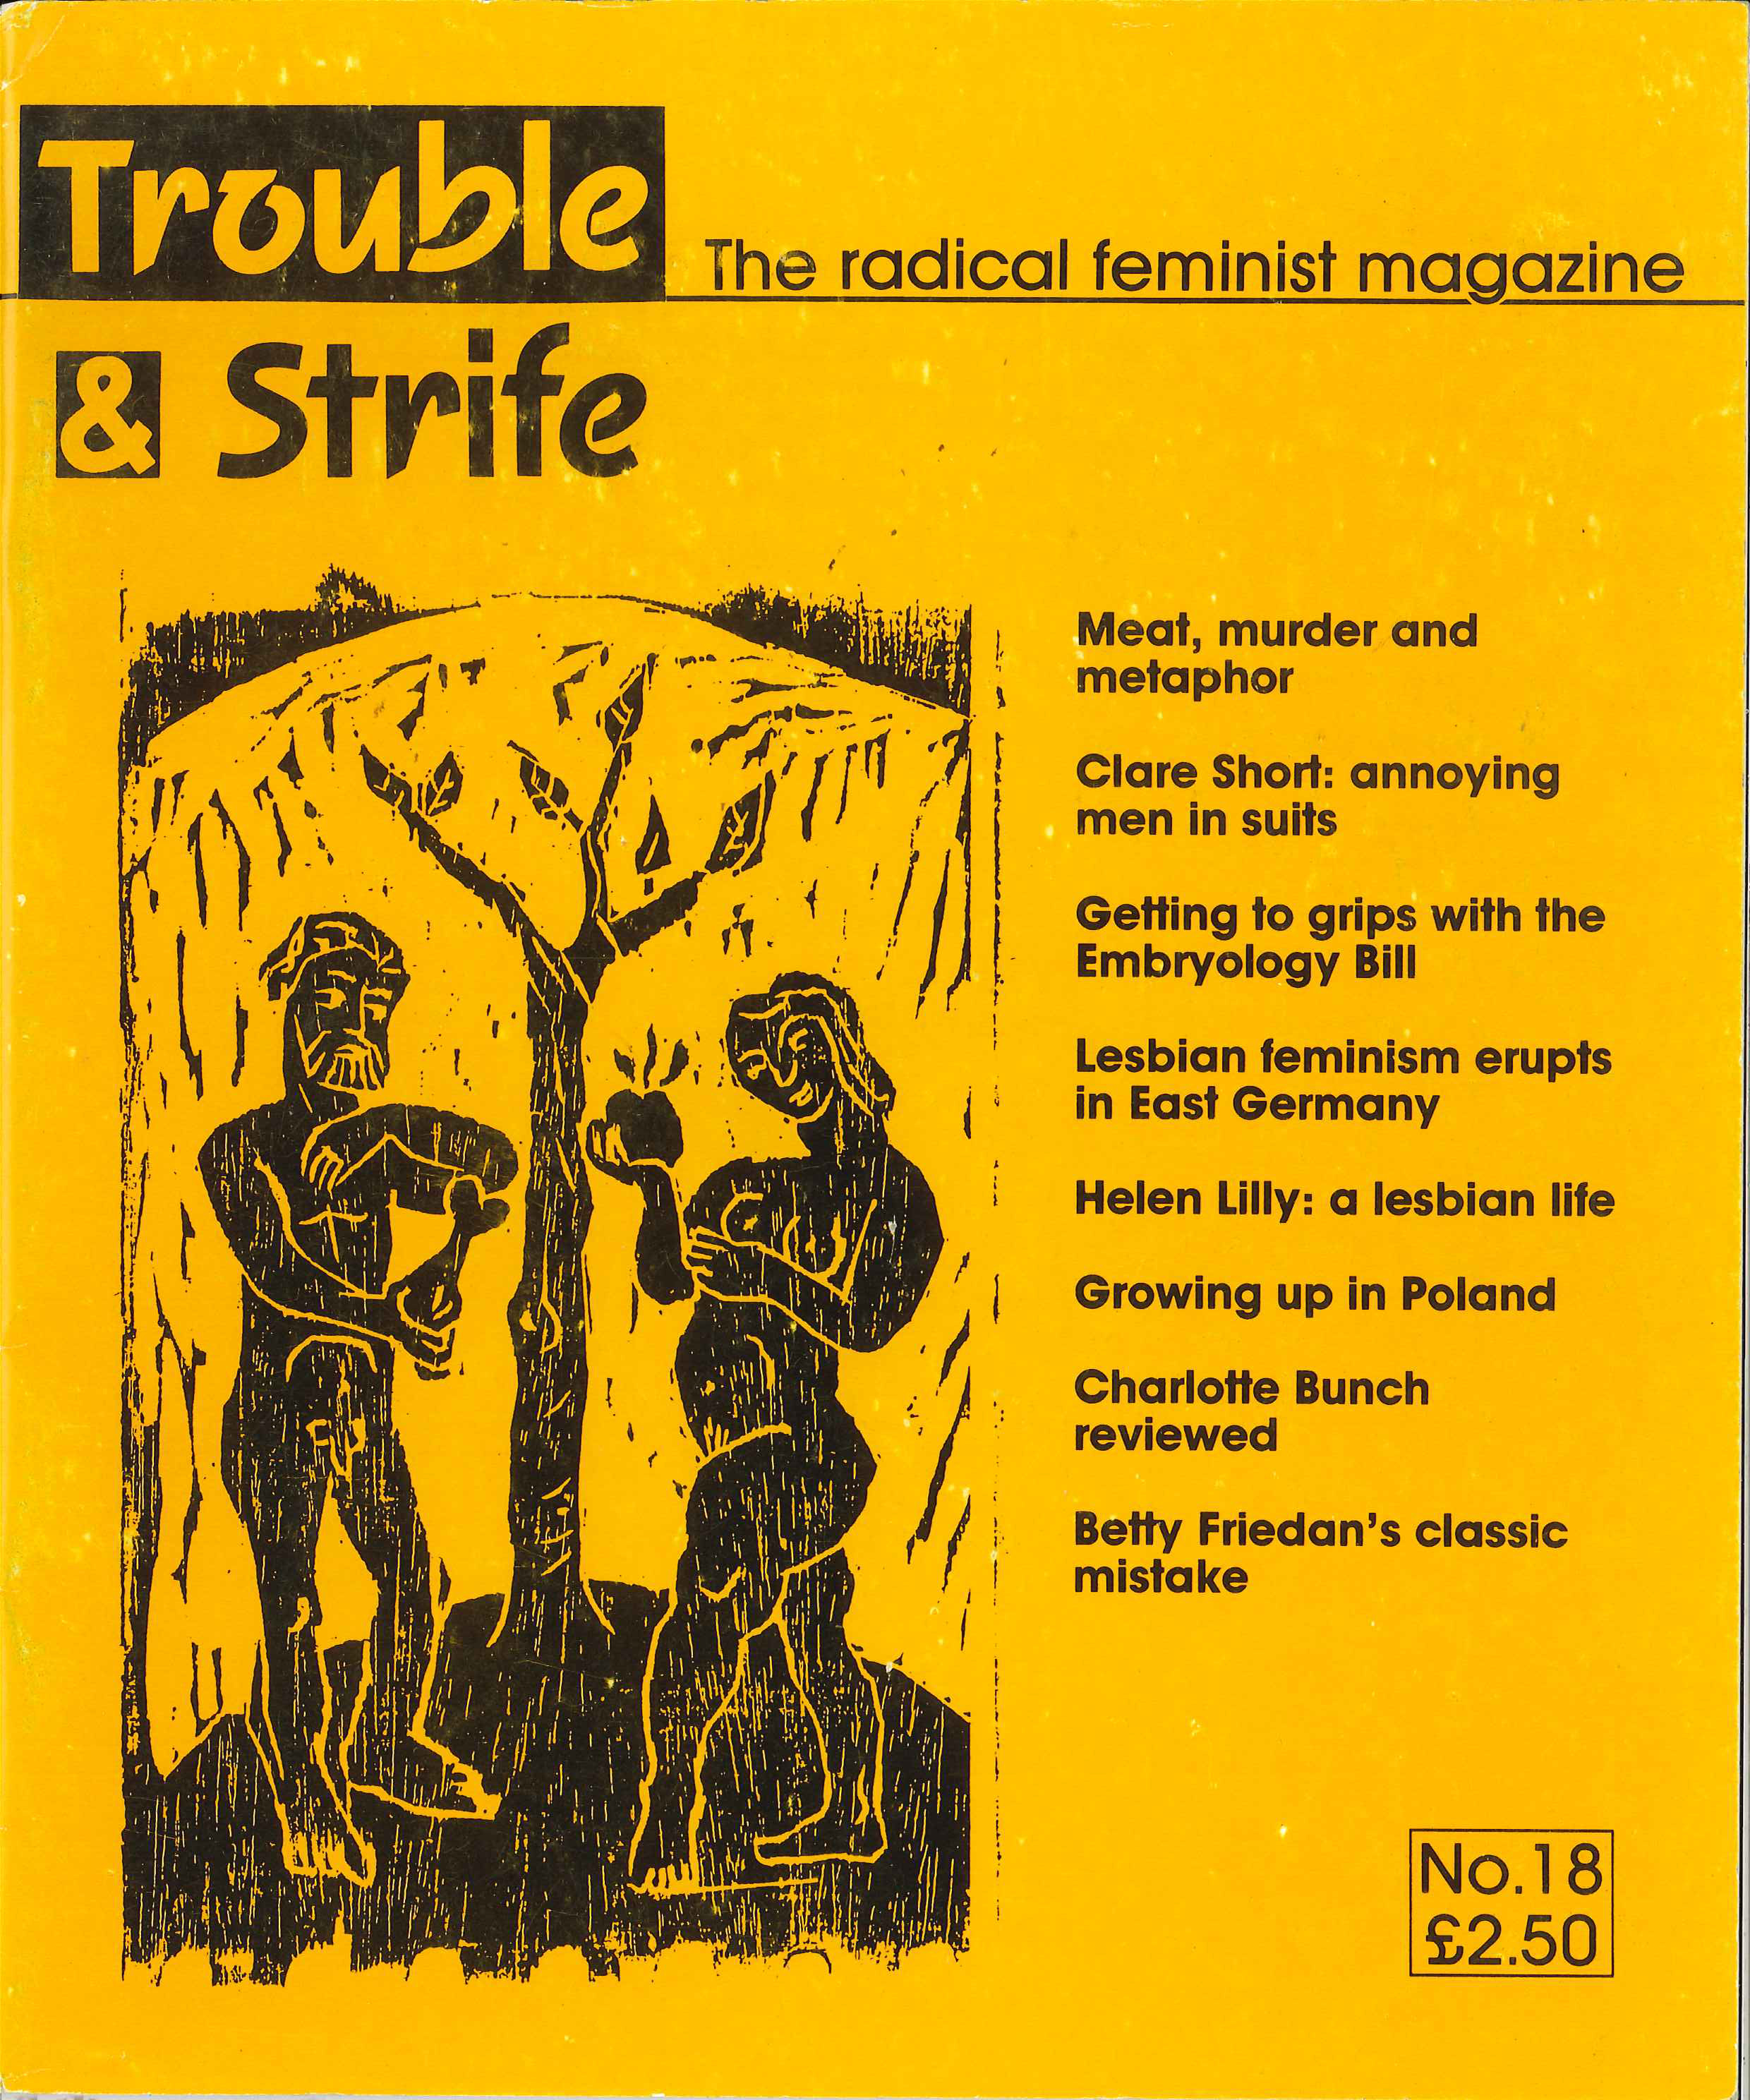 Scan of cover of issue 18